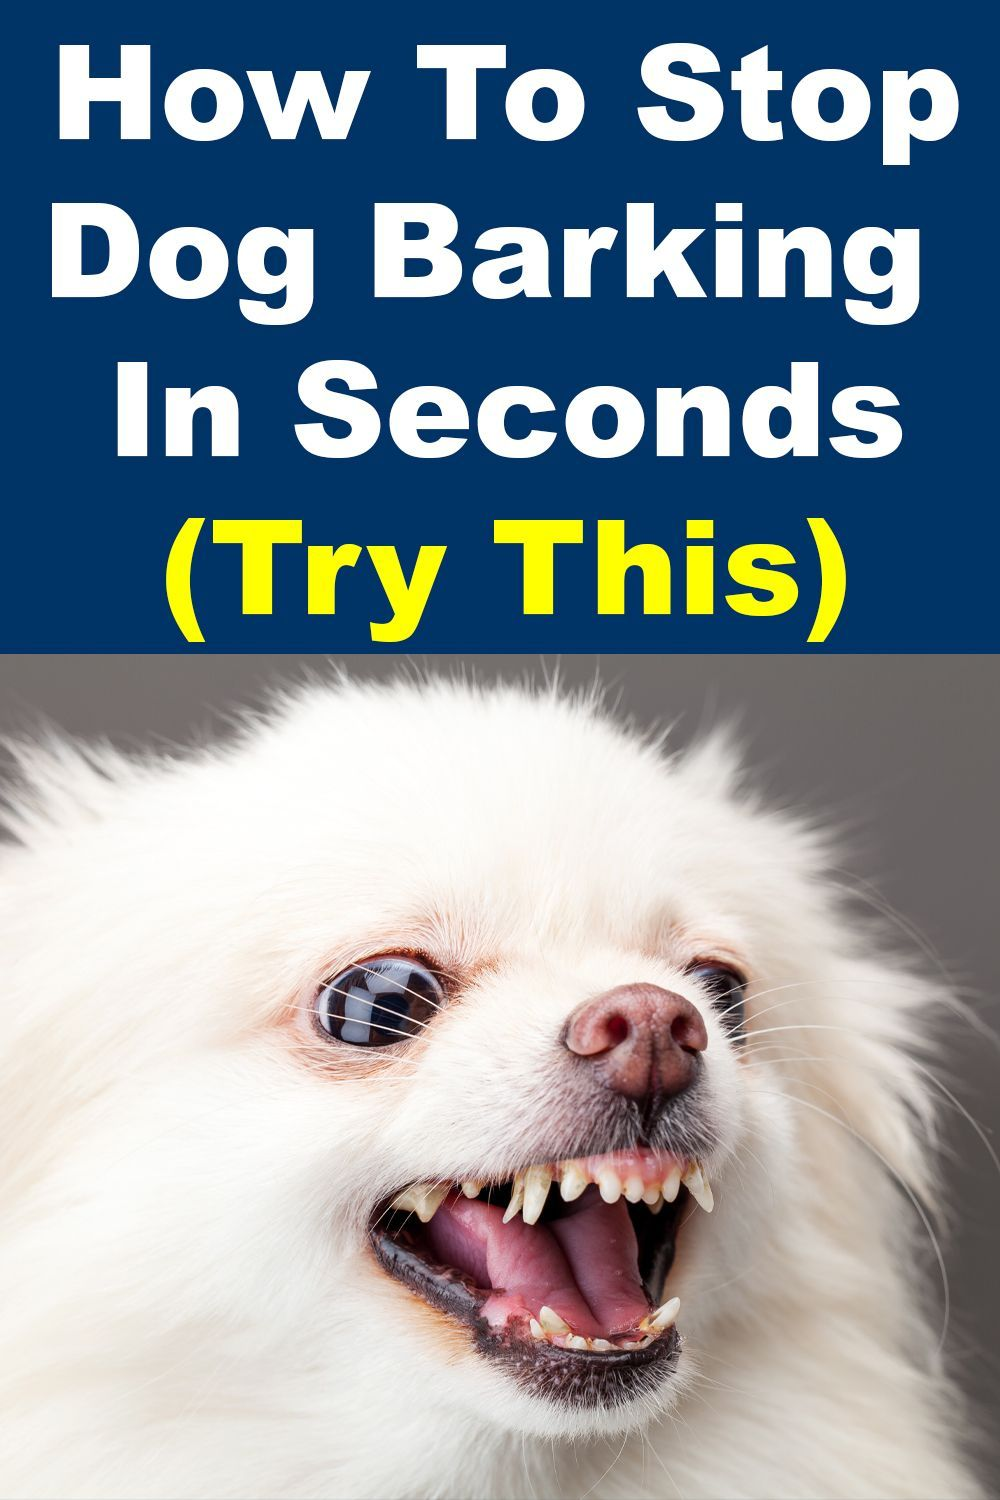 Stop Any Dog From Barking In 2020 Stop Dog Barking Dog Pet Beds Dog Barking